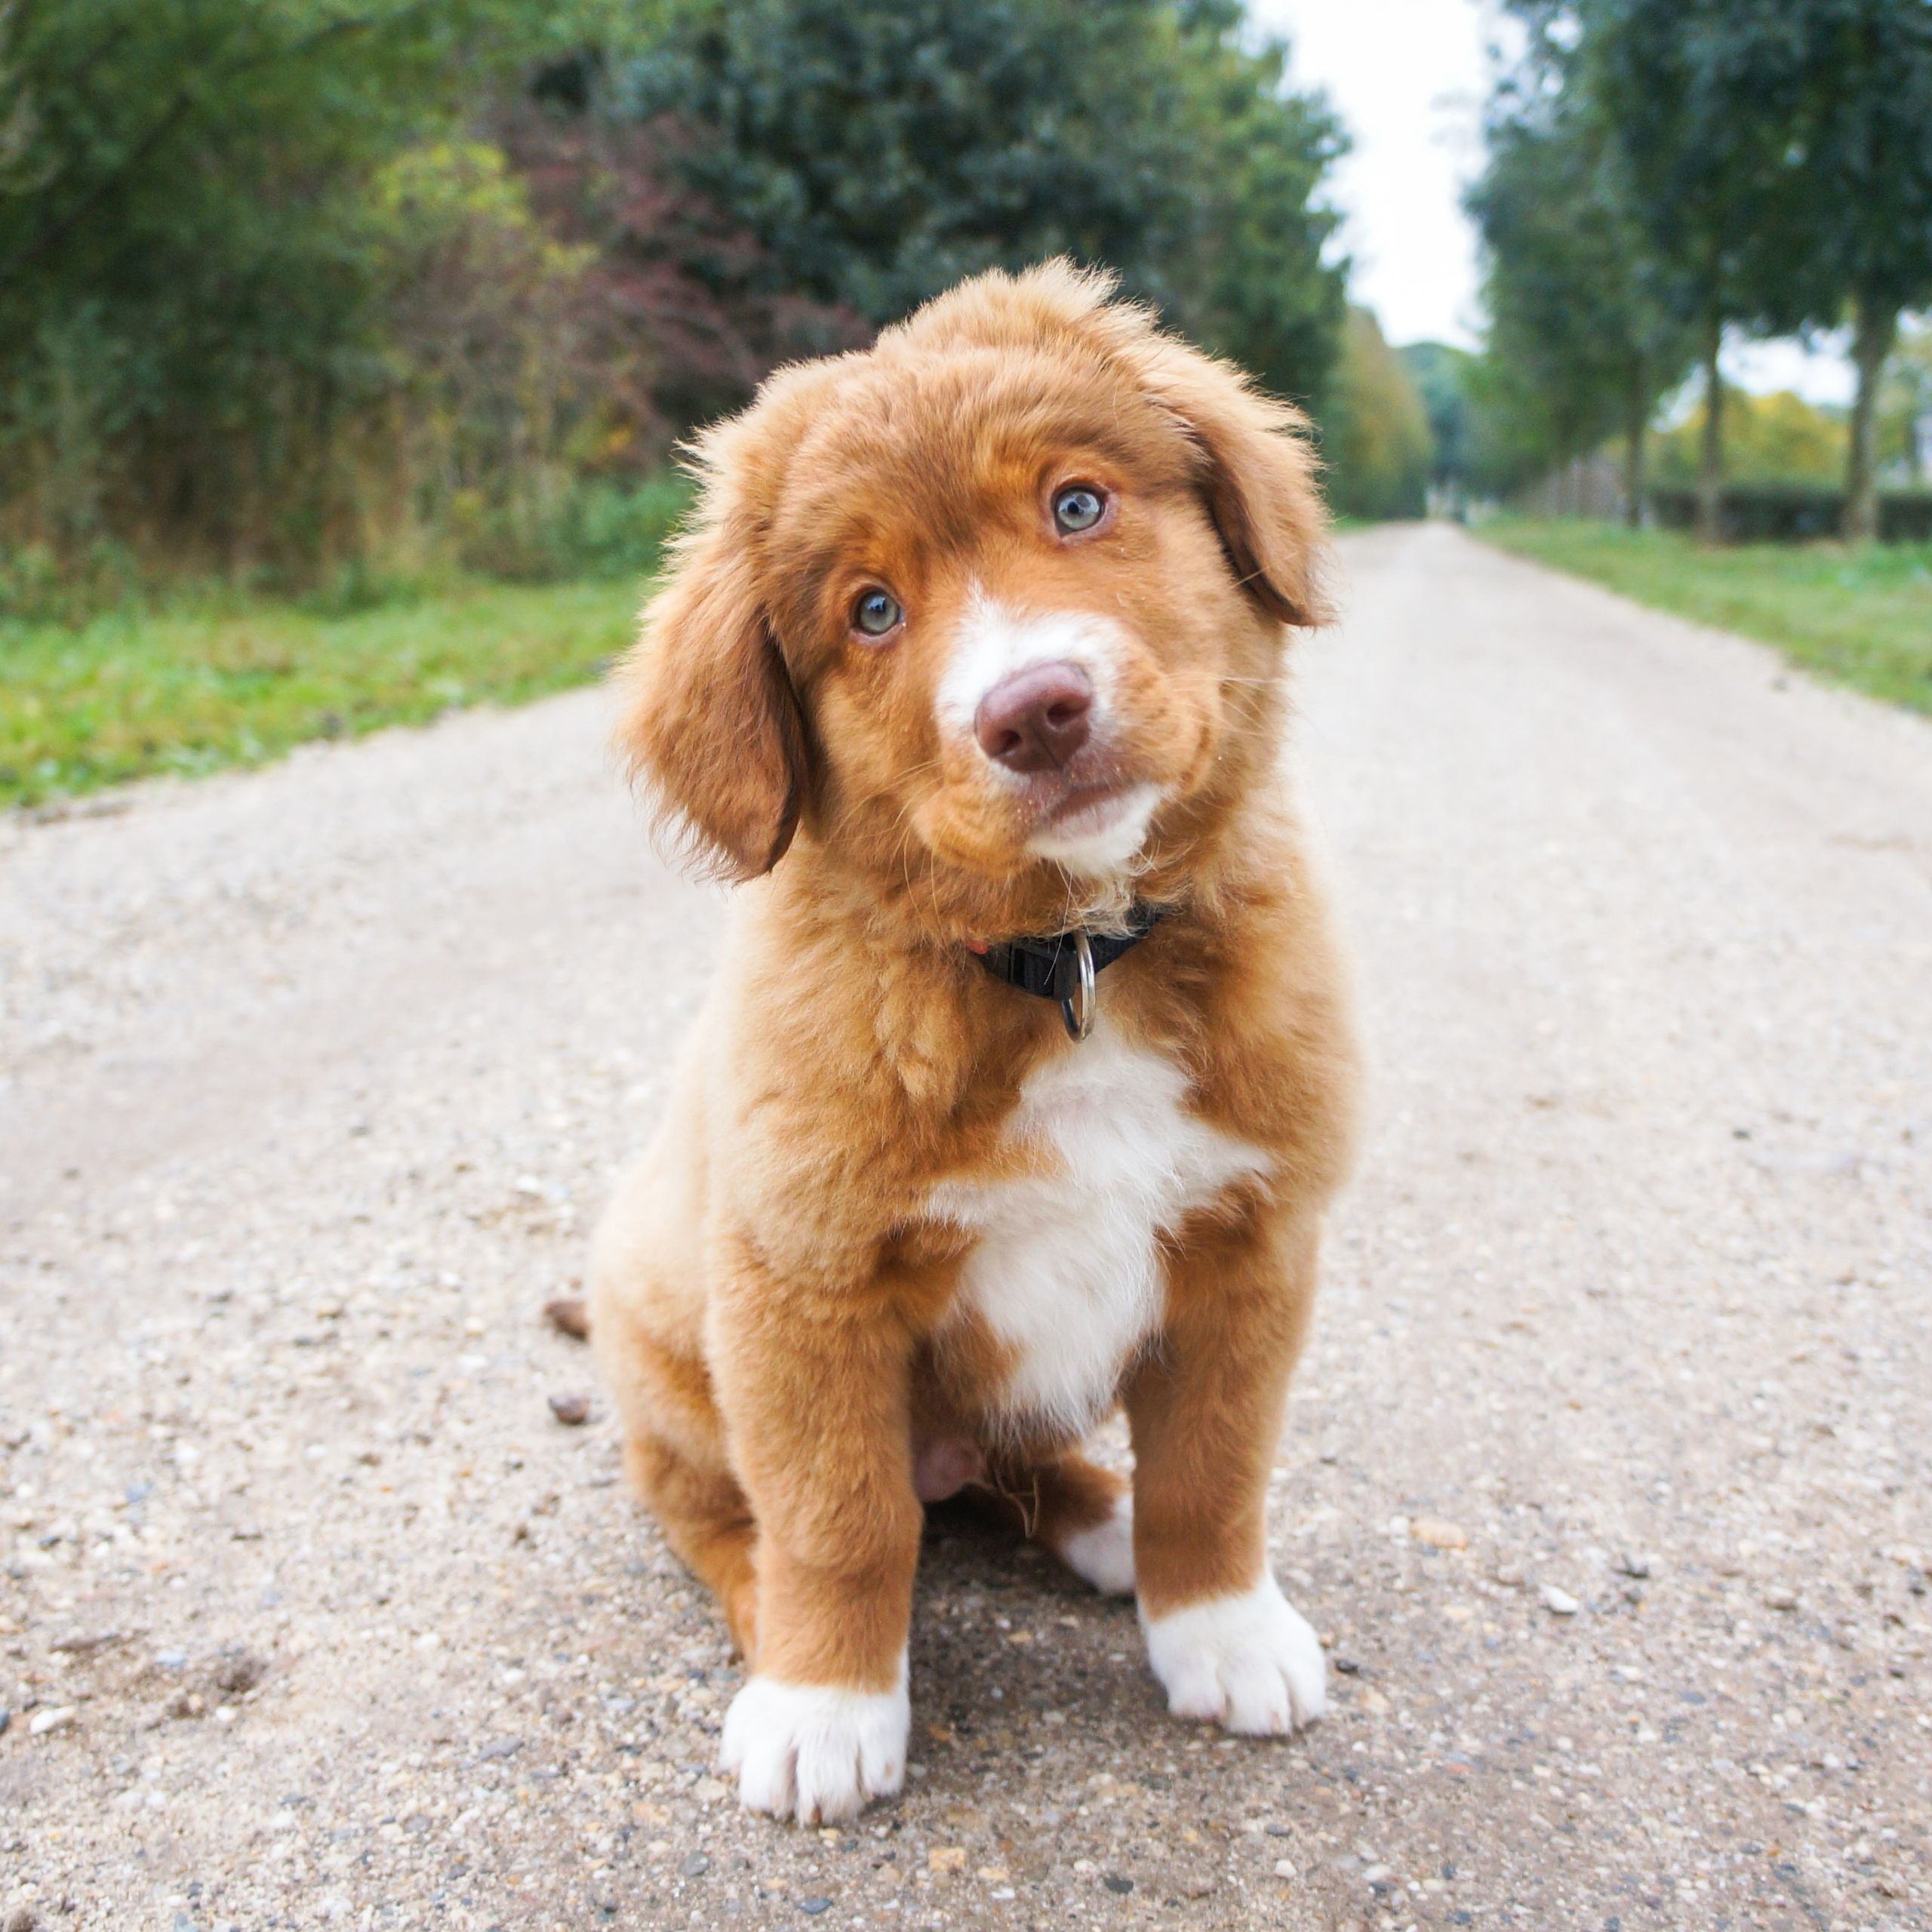 Cute Nova Scotia Duck Tolling Retriever Puppy Retriever Puppy Cute Puppy Photos Nova Scotia Duck Tolling Retriever